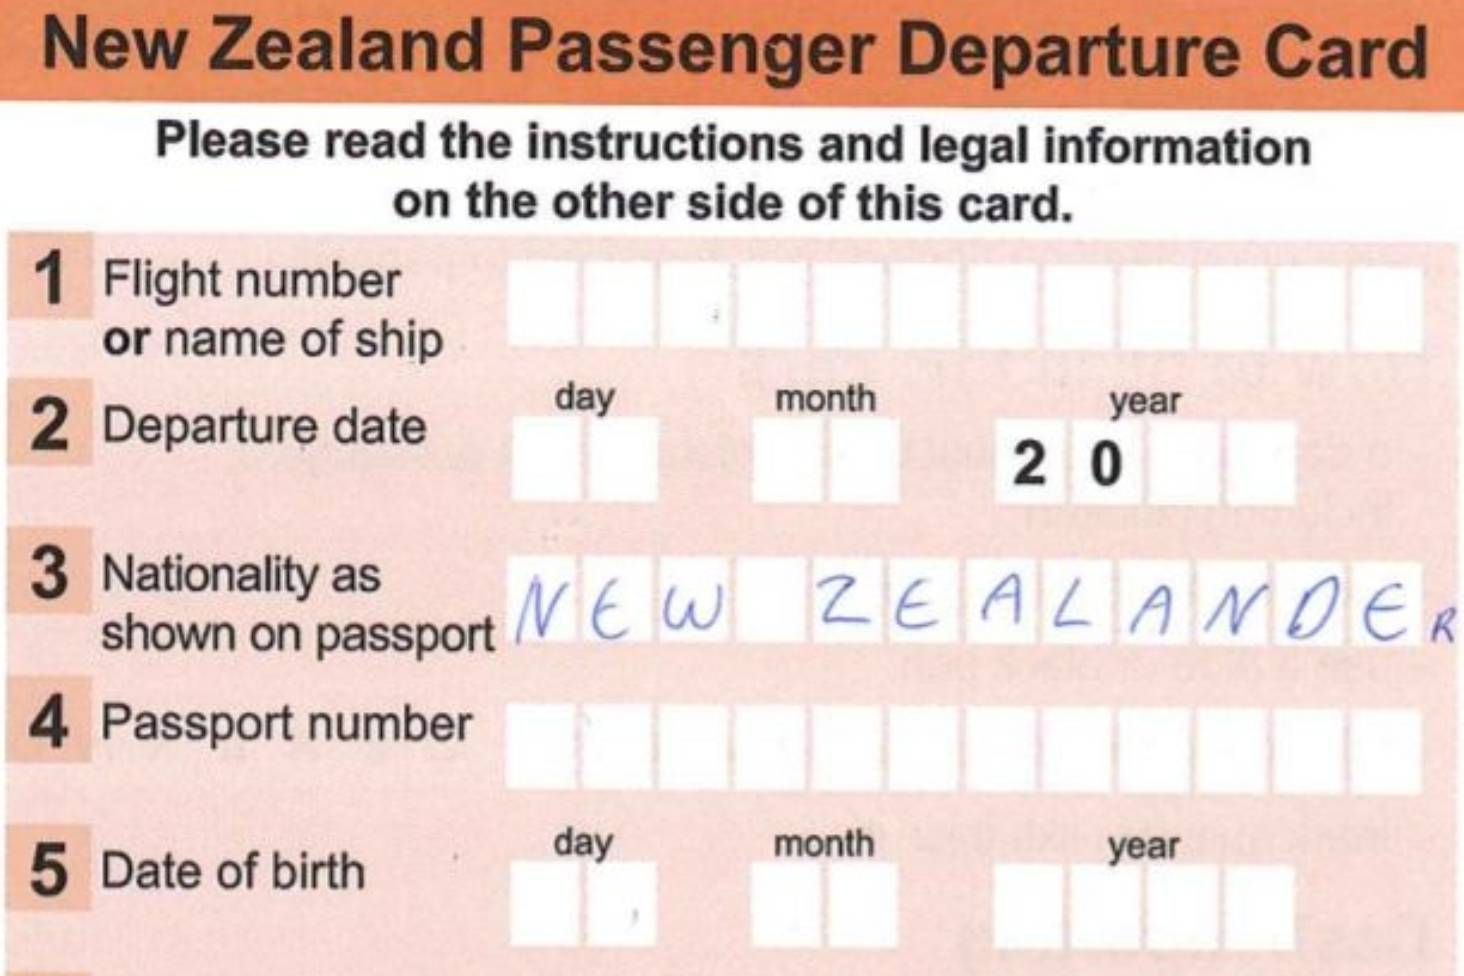 Airport Departure Cards Will Be Off The Table Come November Stuff